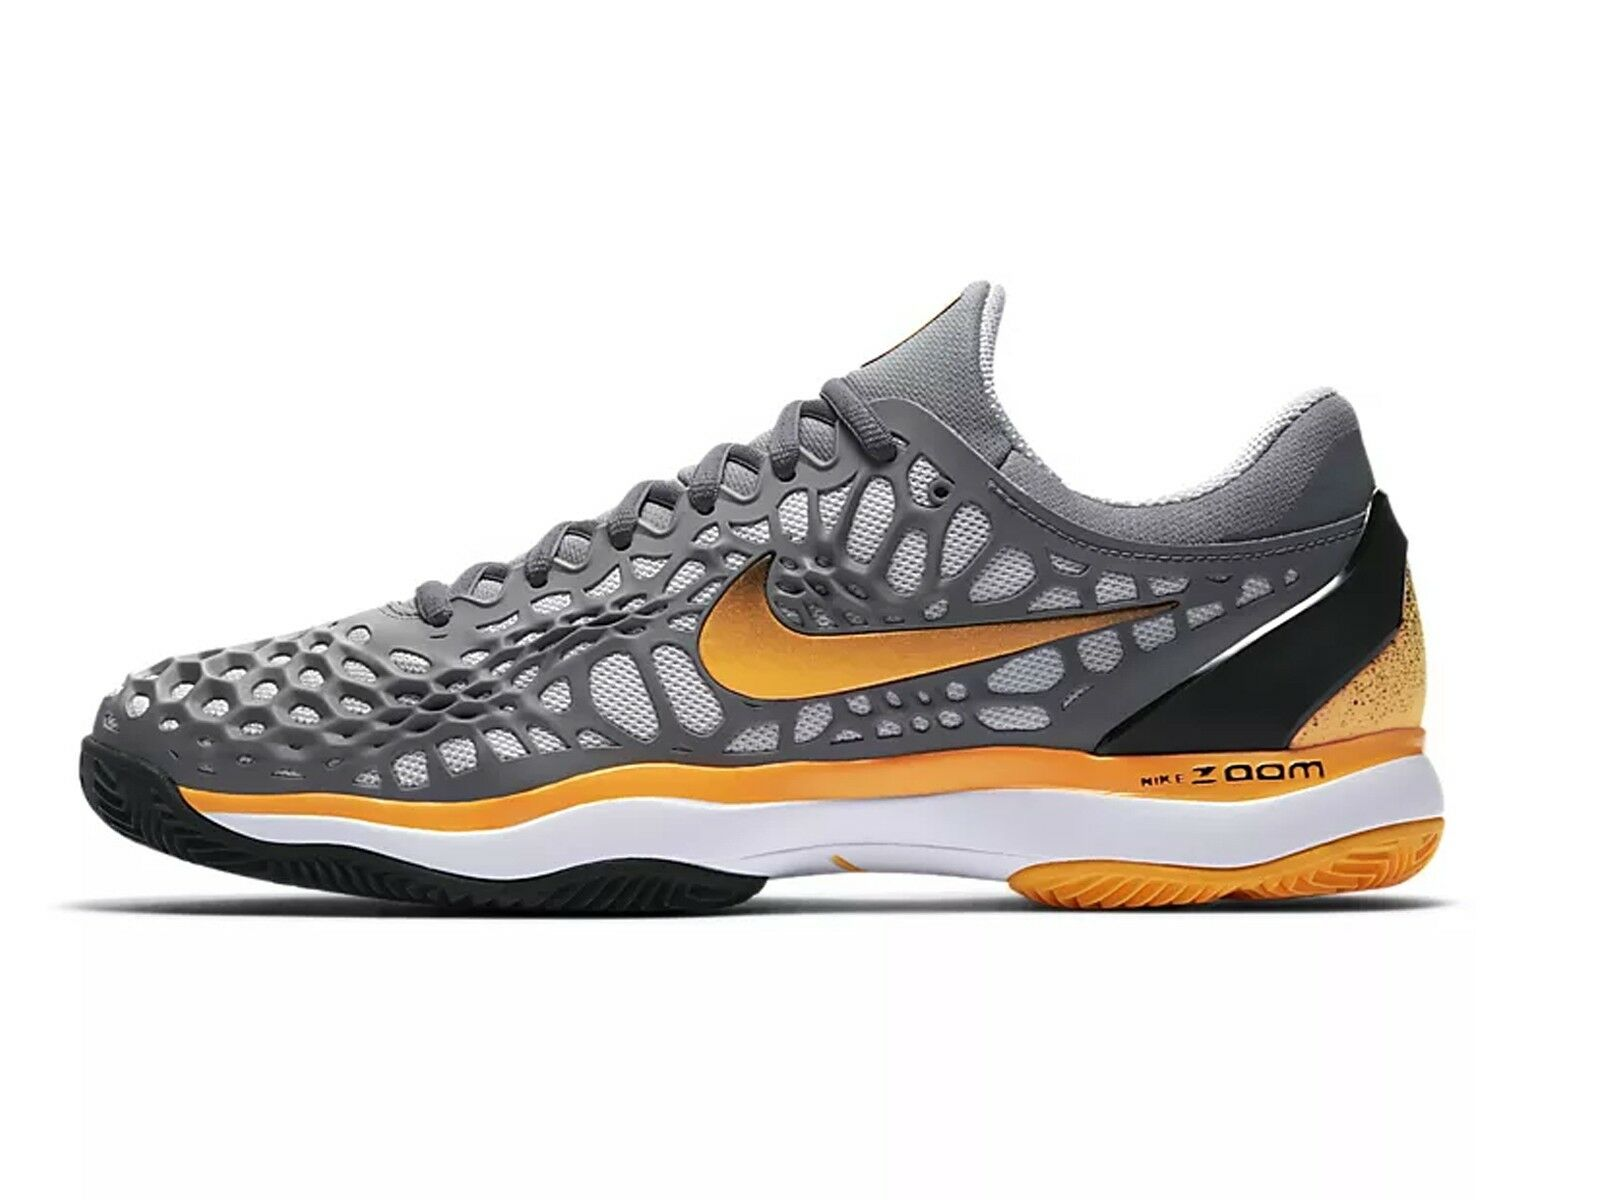 shoes TENNIS men NIKE  918192 003  AIR ZOOM CAGE 3 CLAY COOL GREY LASER orange